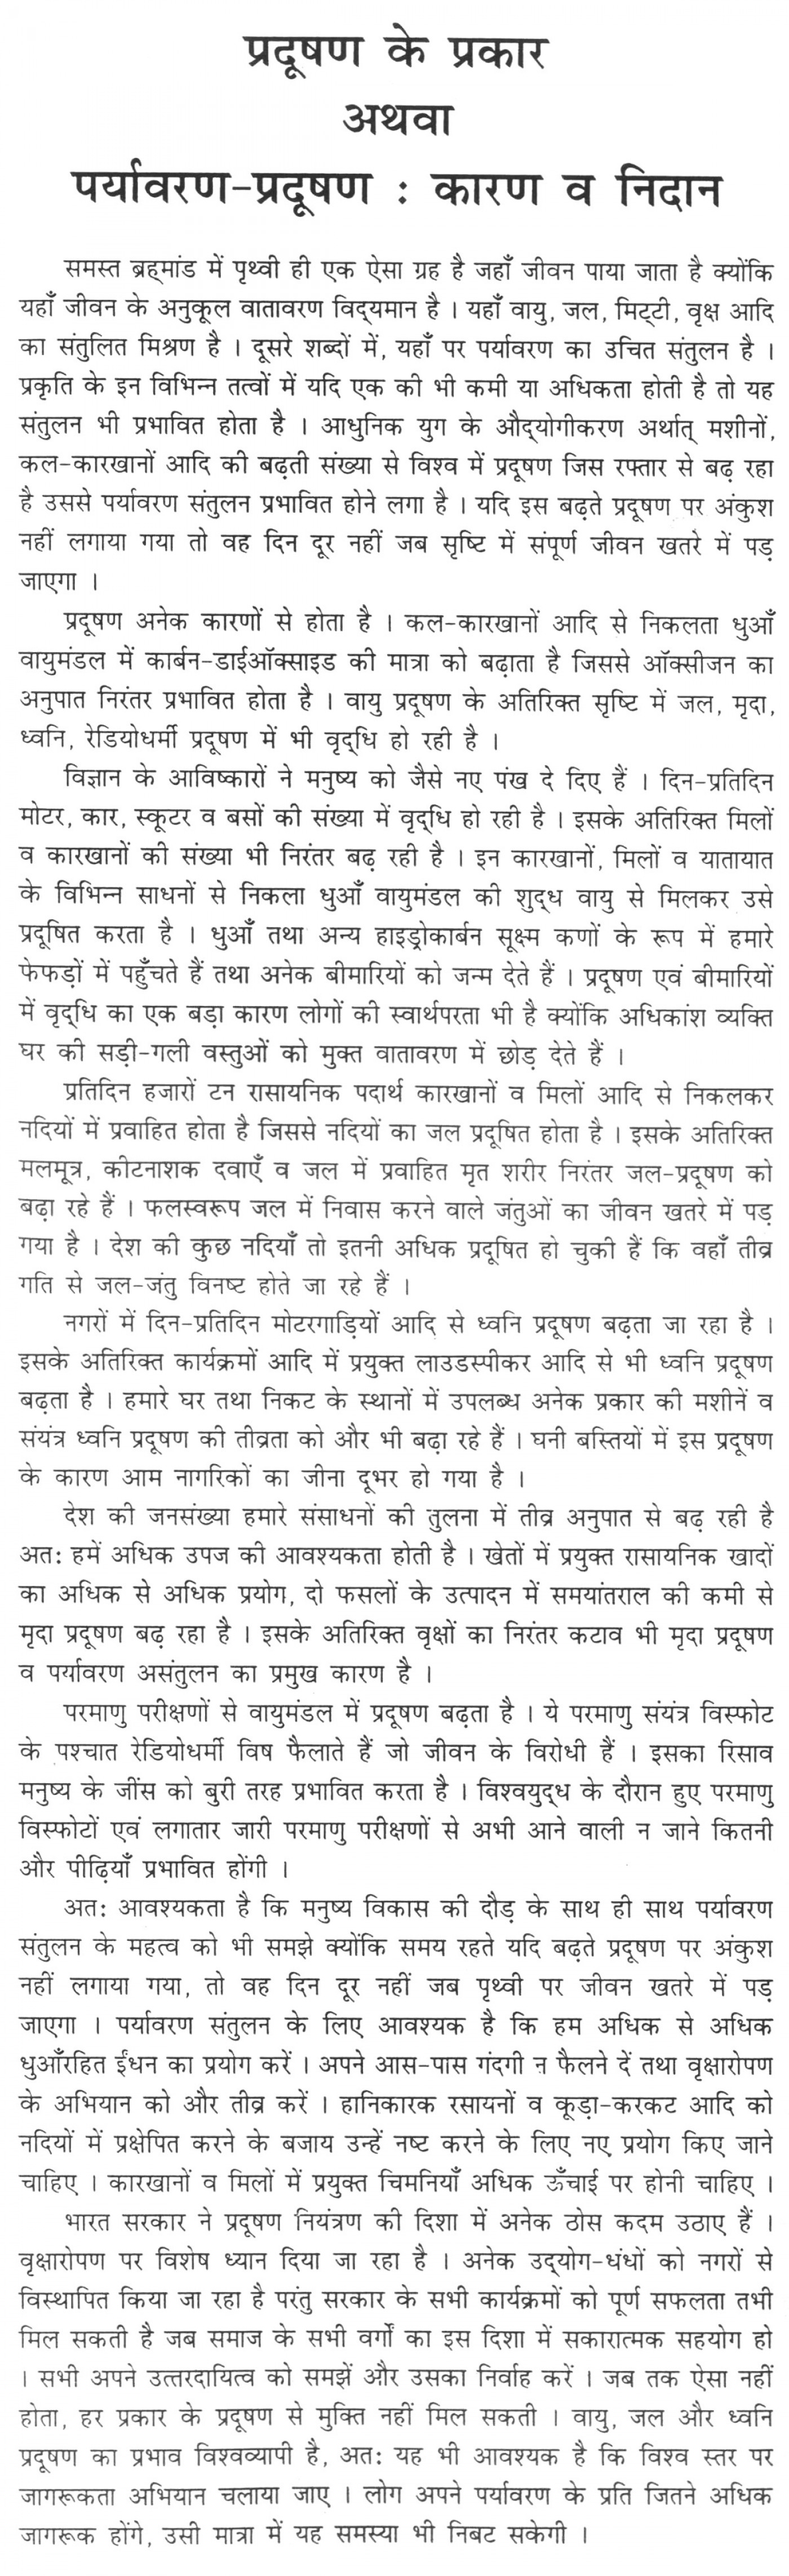 014 Good Habits Essay In Hindi Exceptional And Bad Healthy Eating 1400